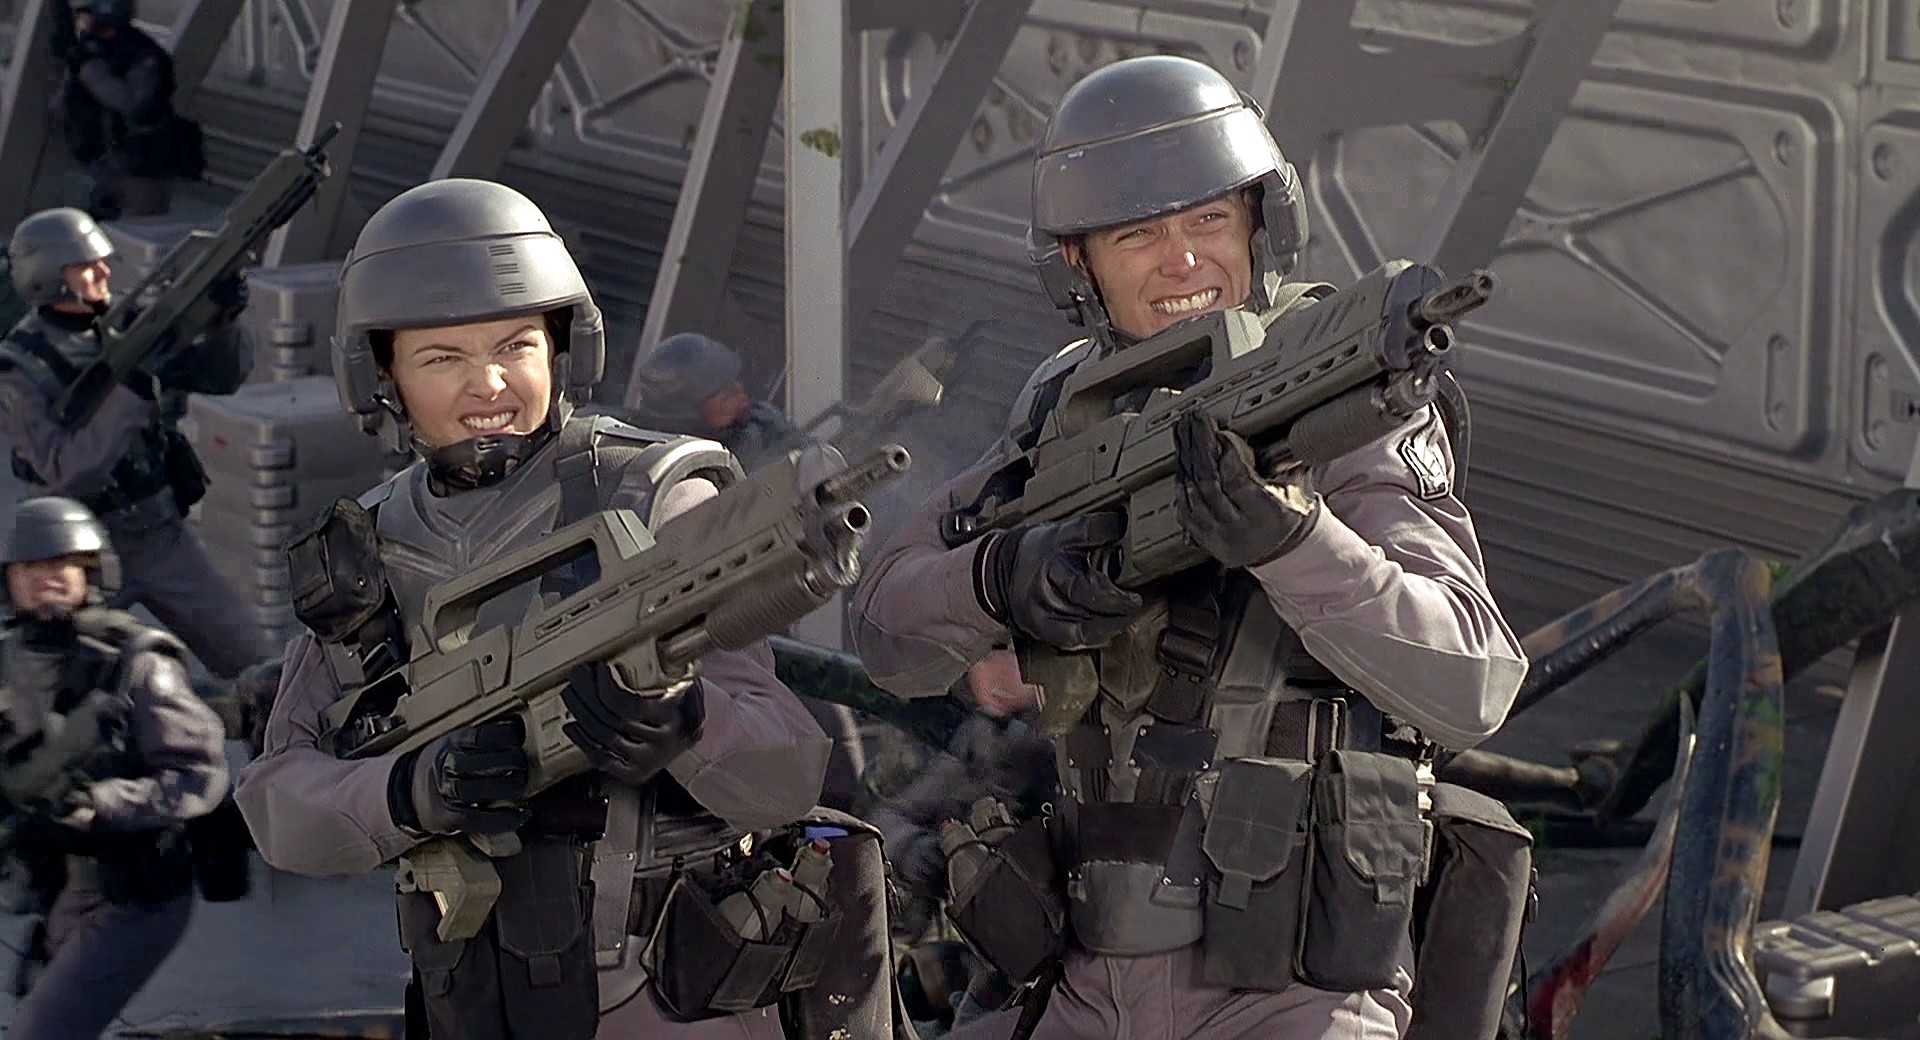 The Starship Troopers in combat.